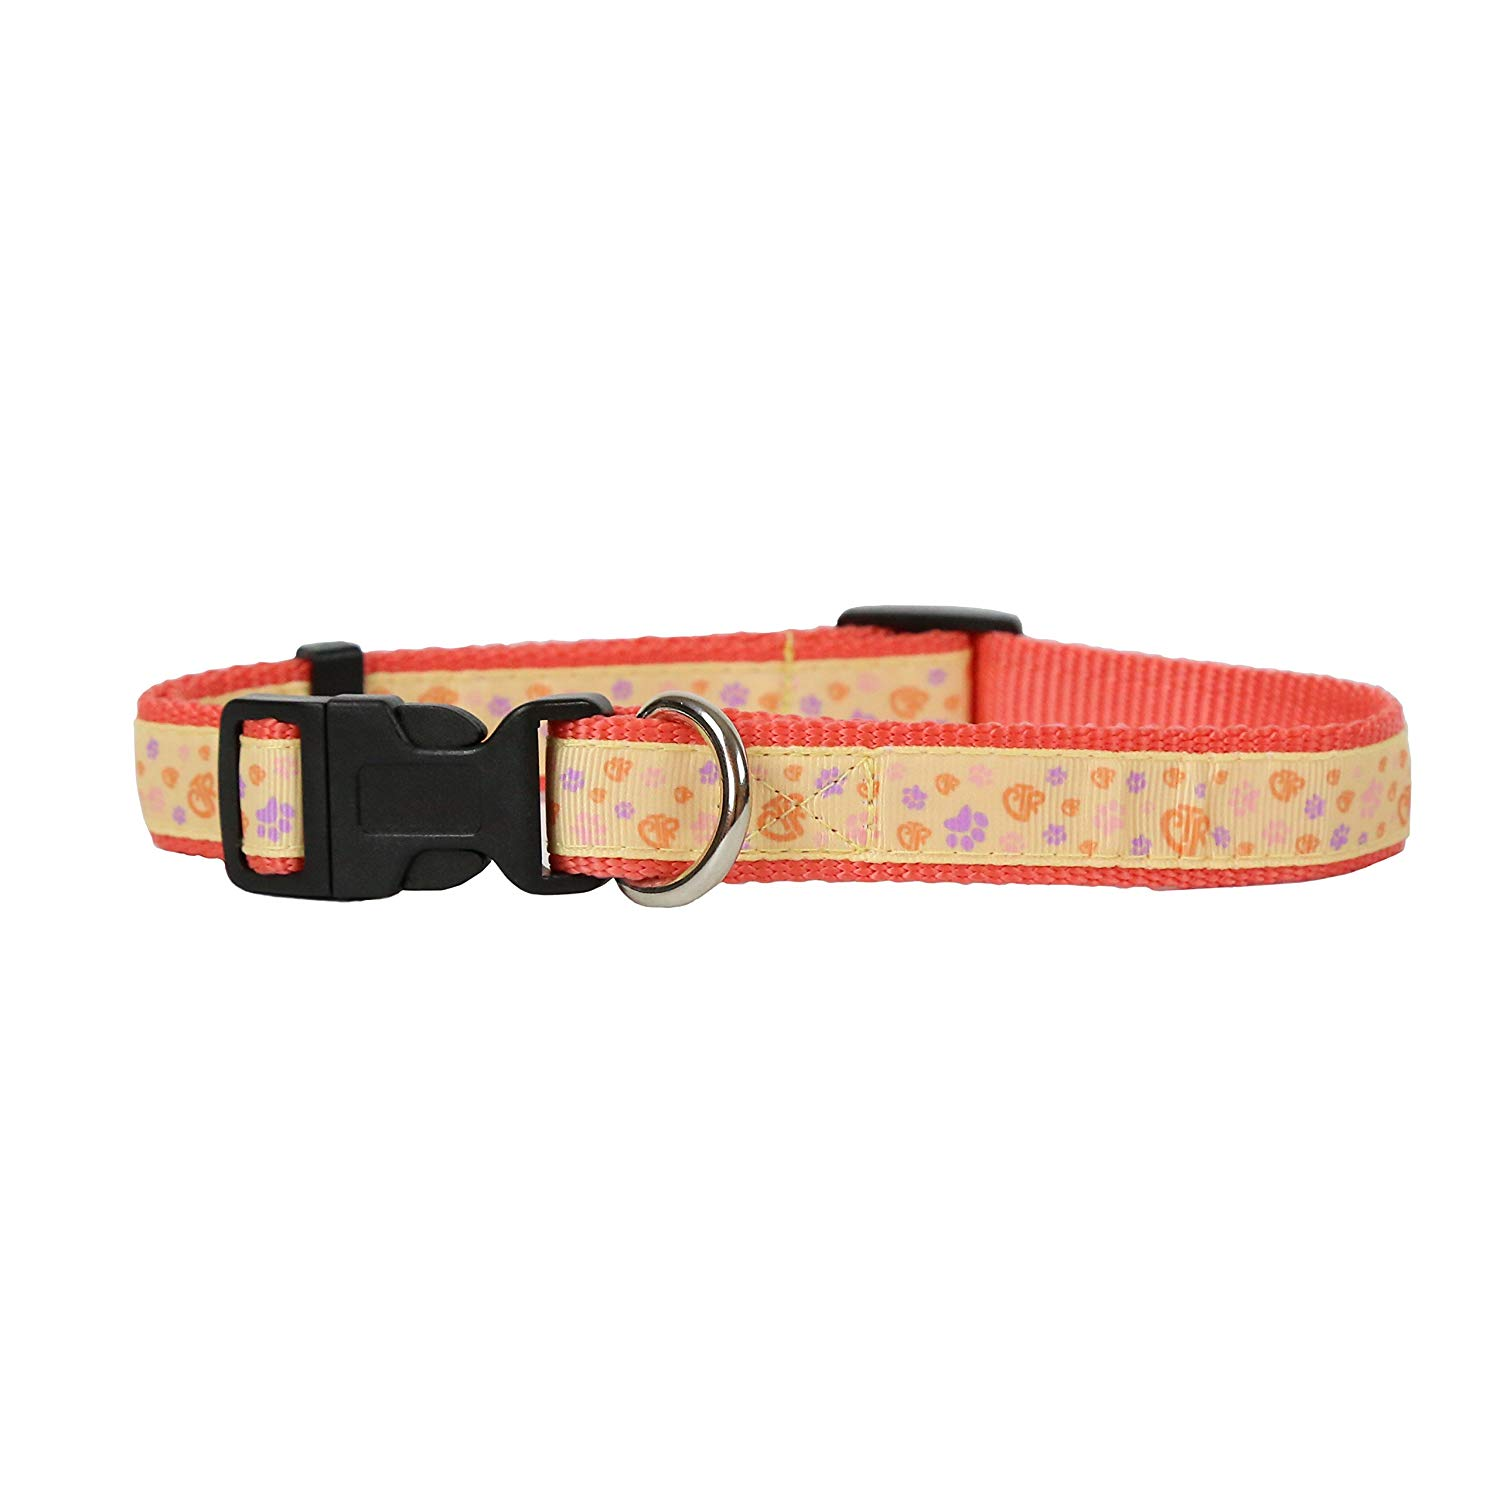 Pink CTR Pet Collar - perfect for dogs, cats, and more - pets can choose the right